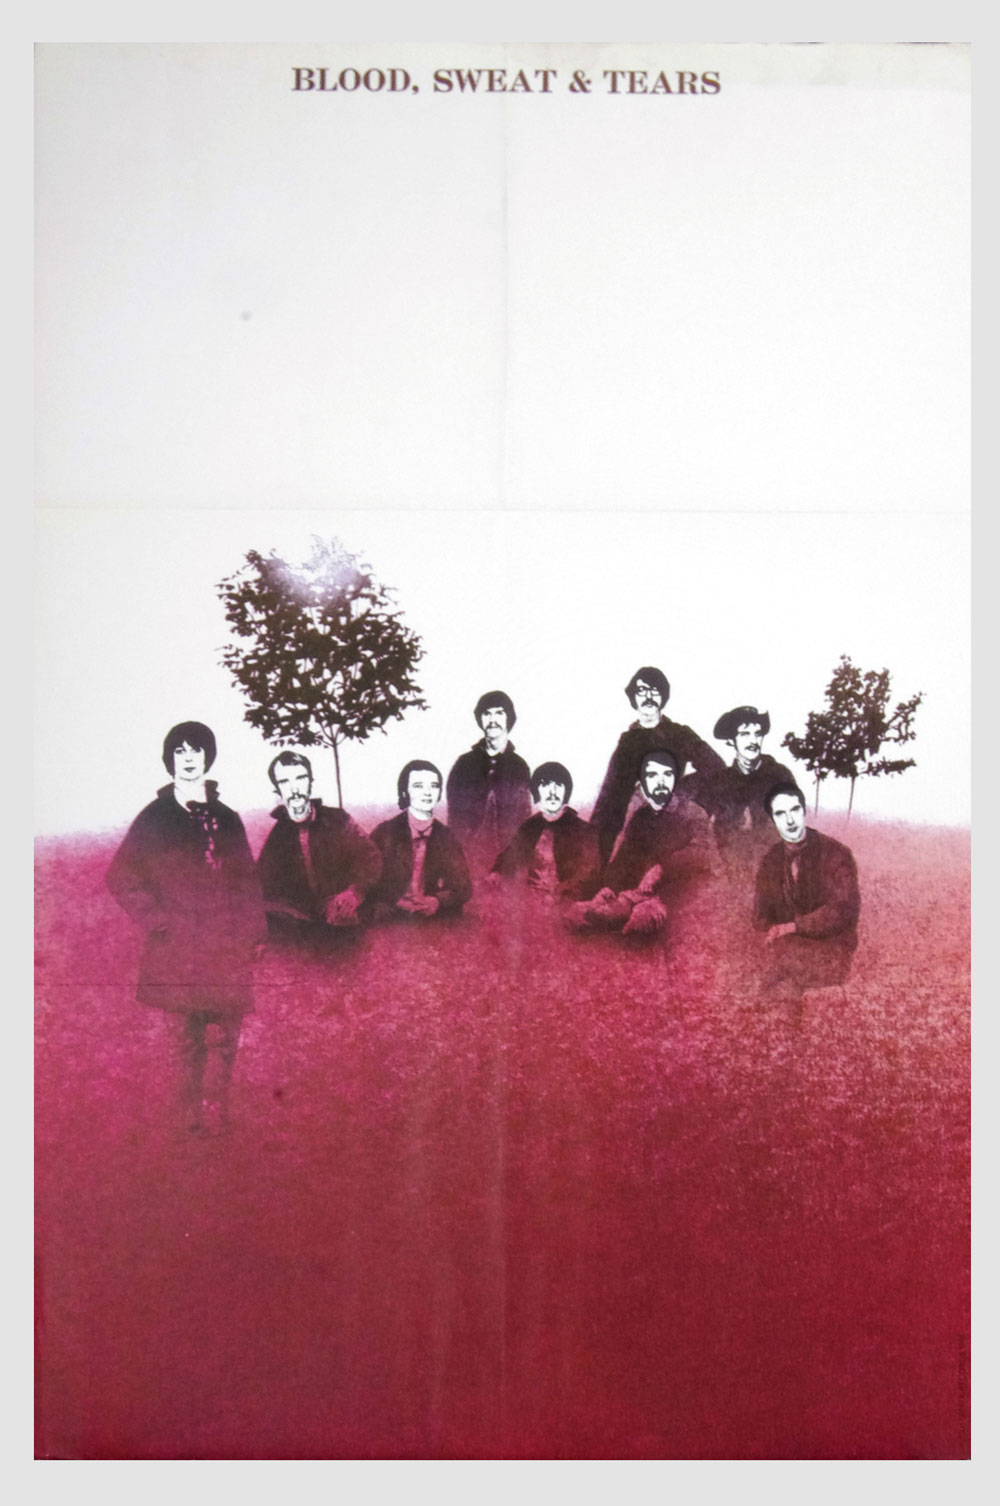 Blood Sweat and Tears Poster self titled 1968 New Albums Promo 22 x 33